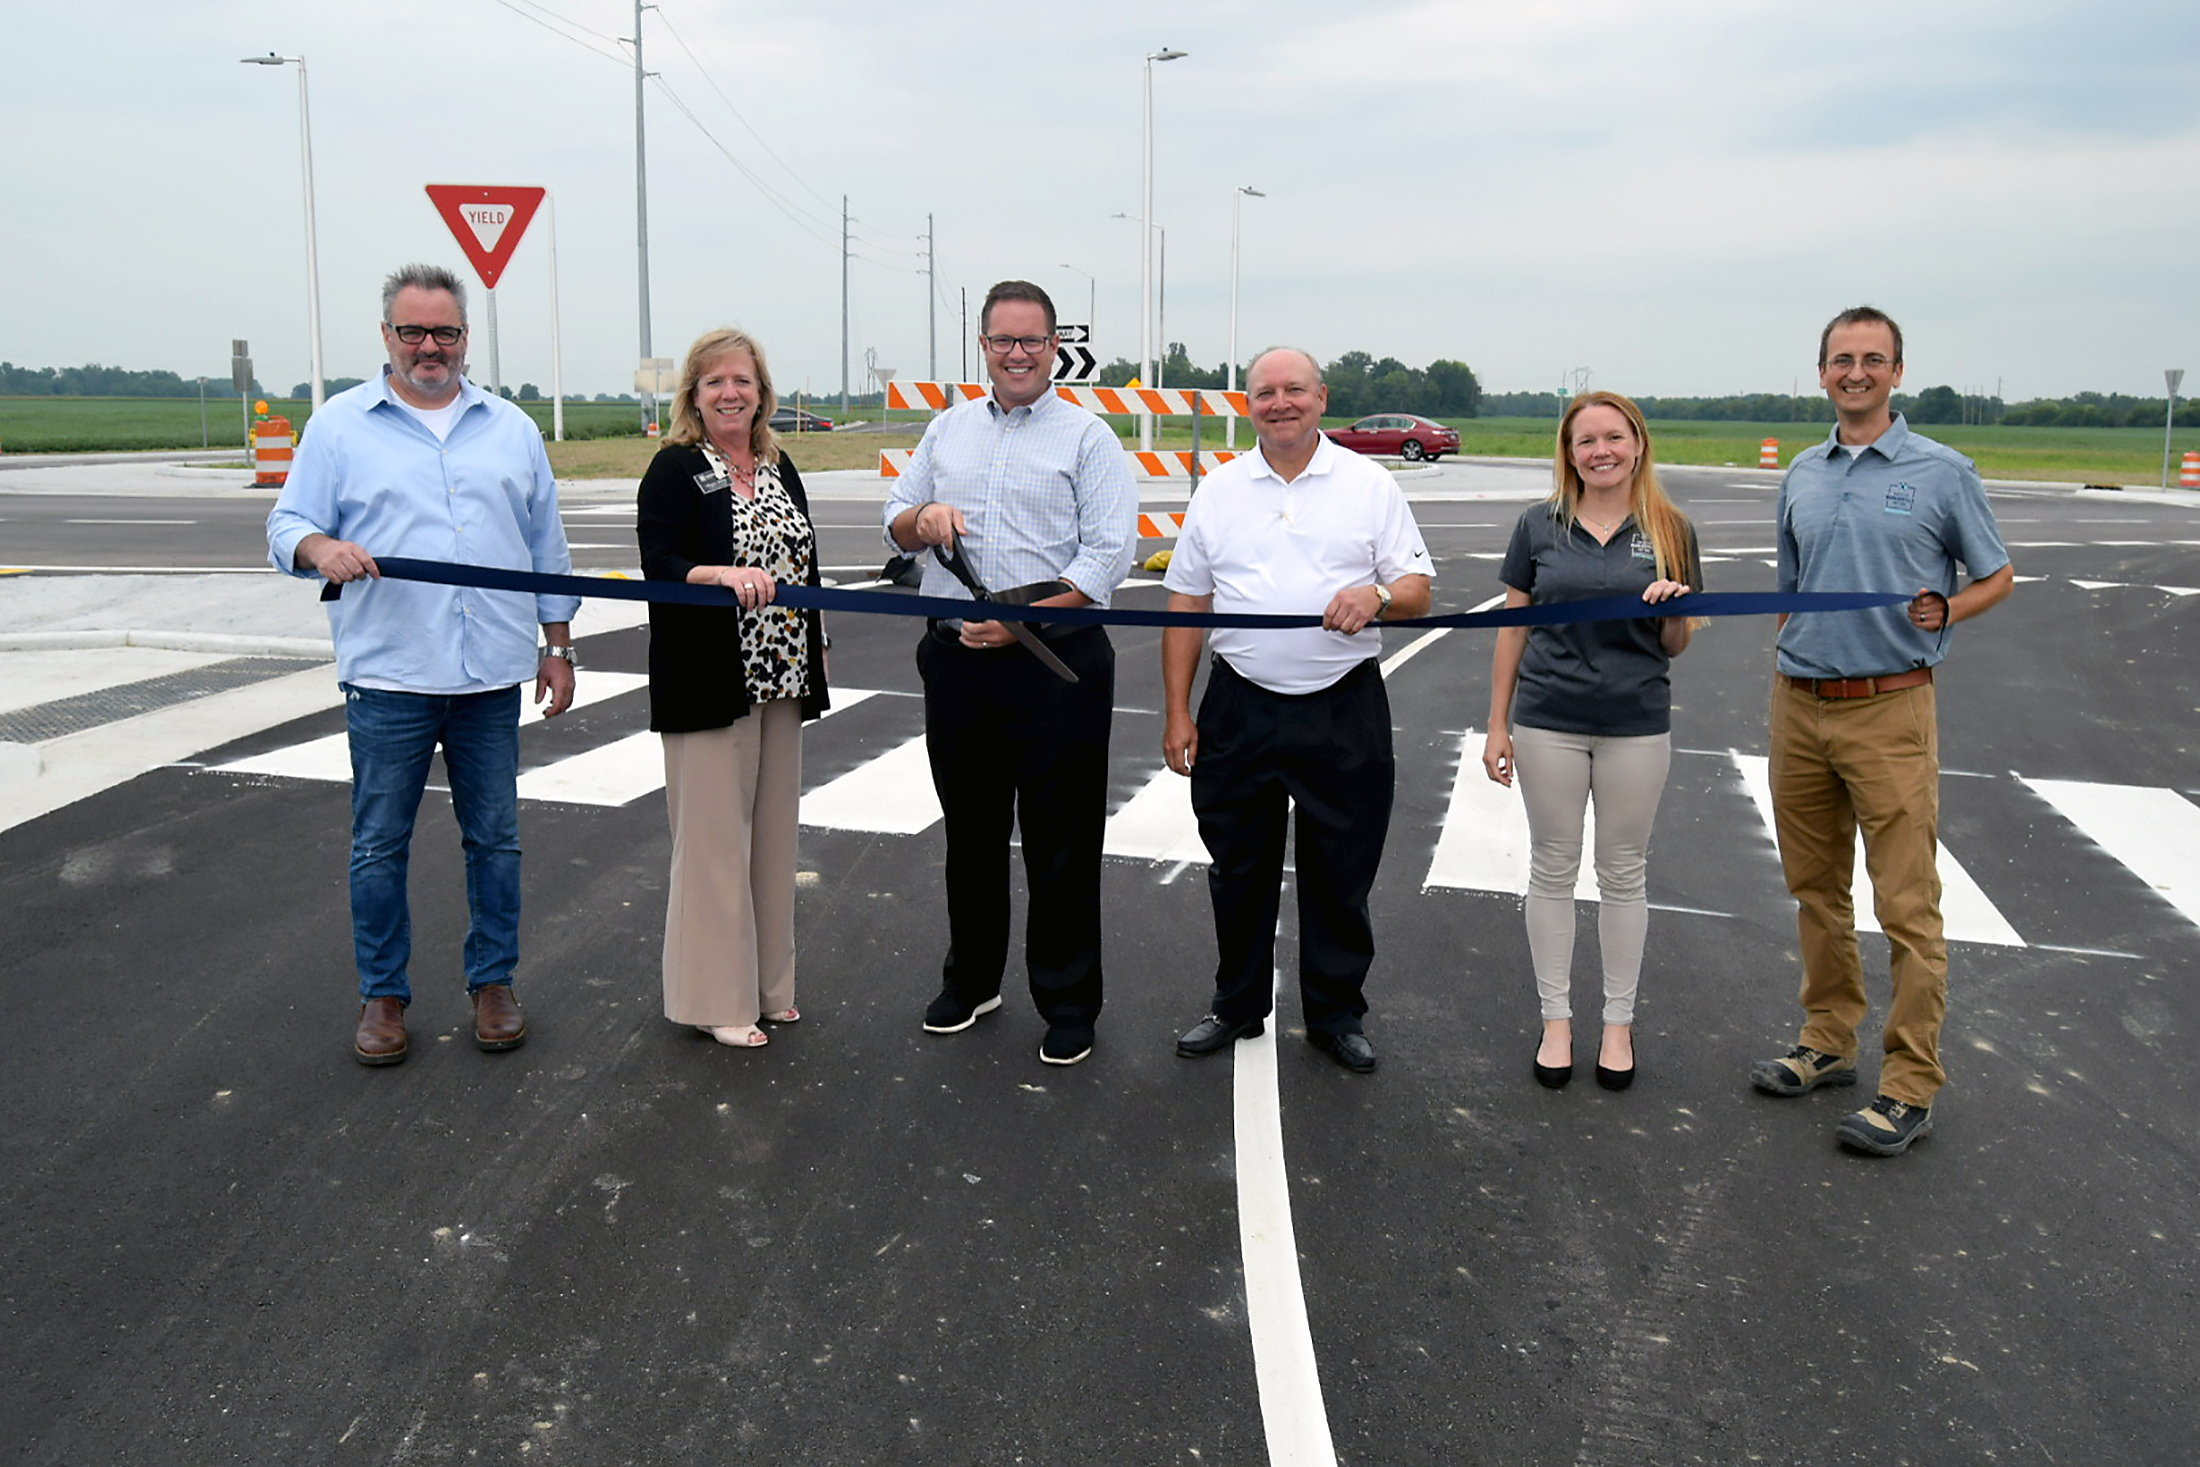 Noblesville Opens Olio Road, 146thStreet 3 Months Ahead of Schedule